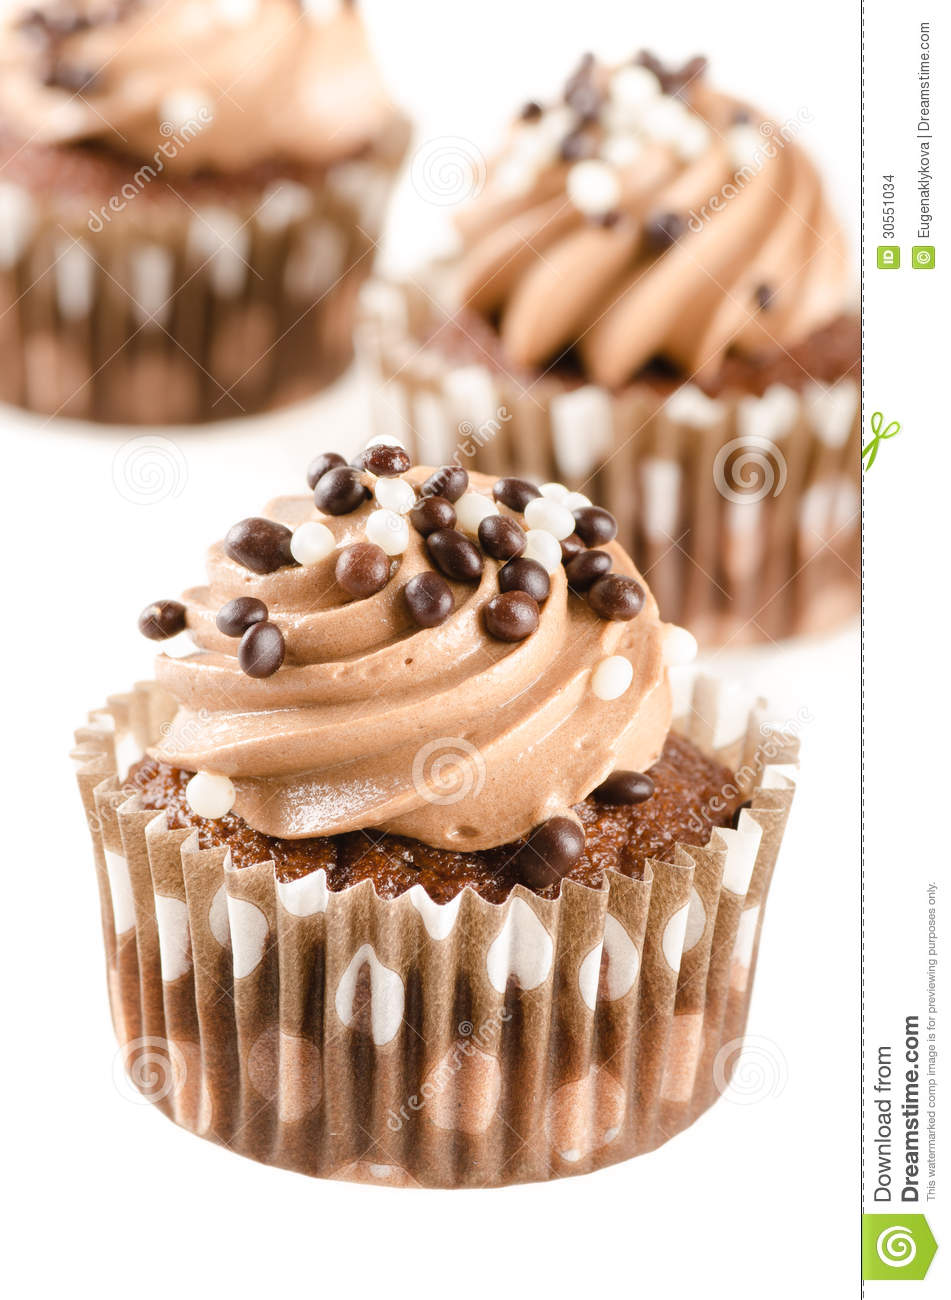 how to make chocolate cupcakes with icing